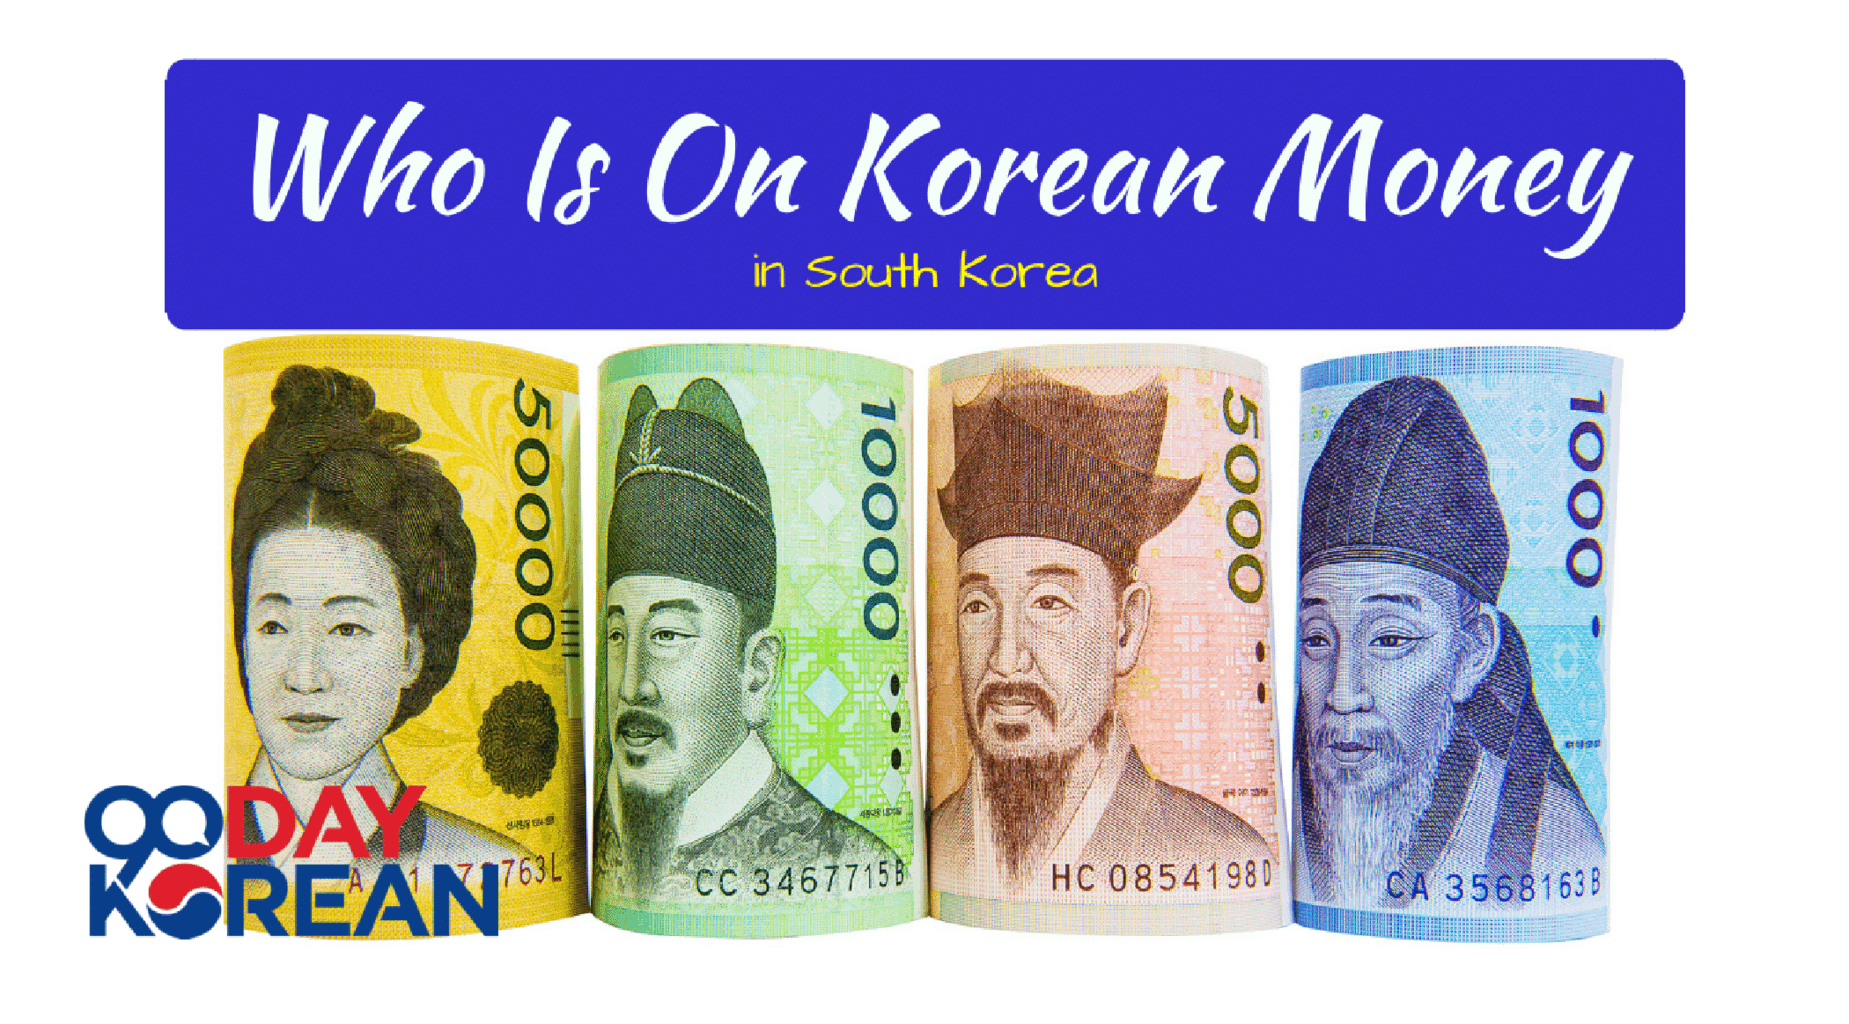 4 different Korean currency bills rolled up